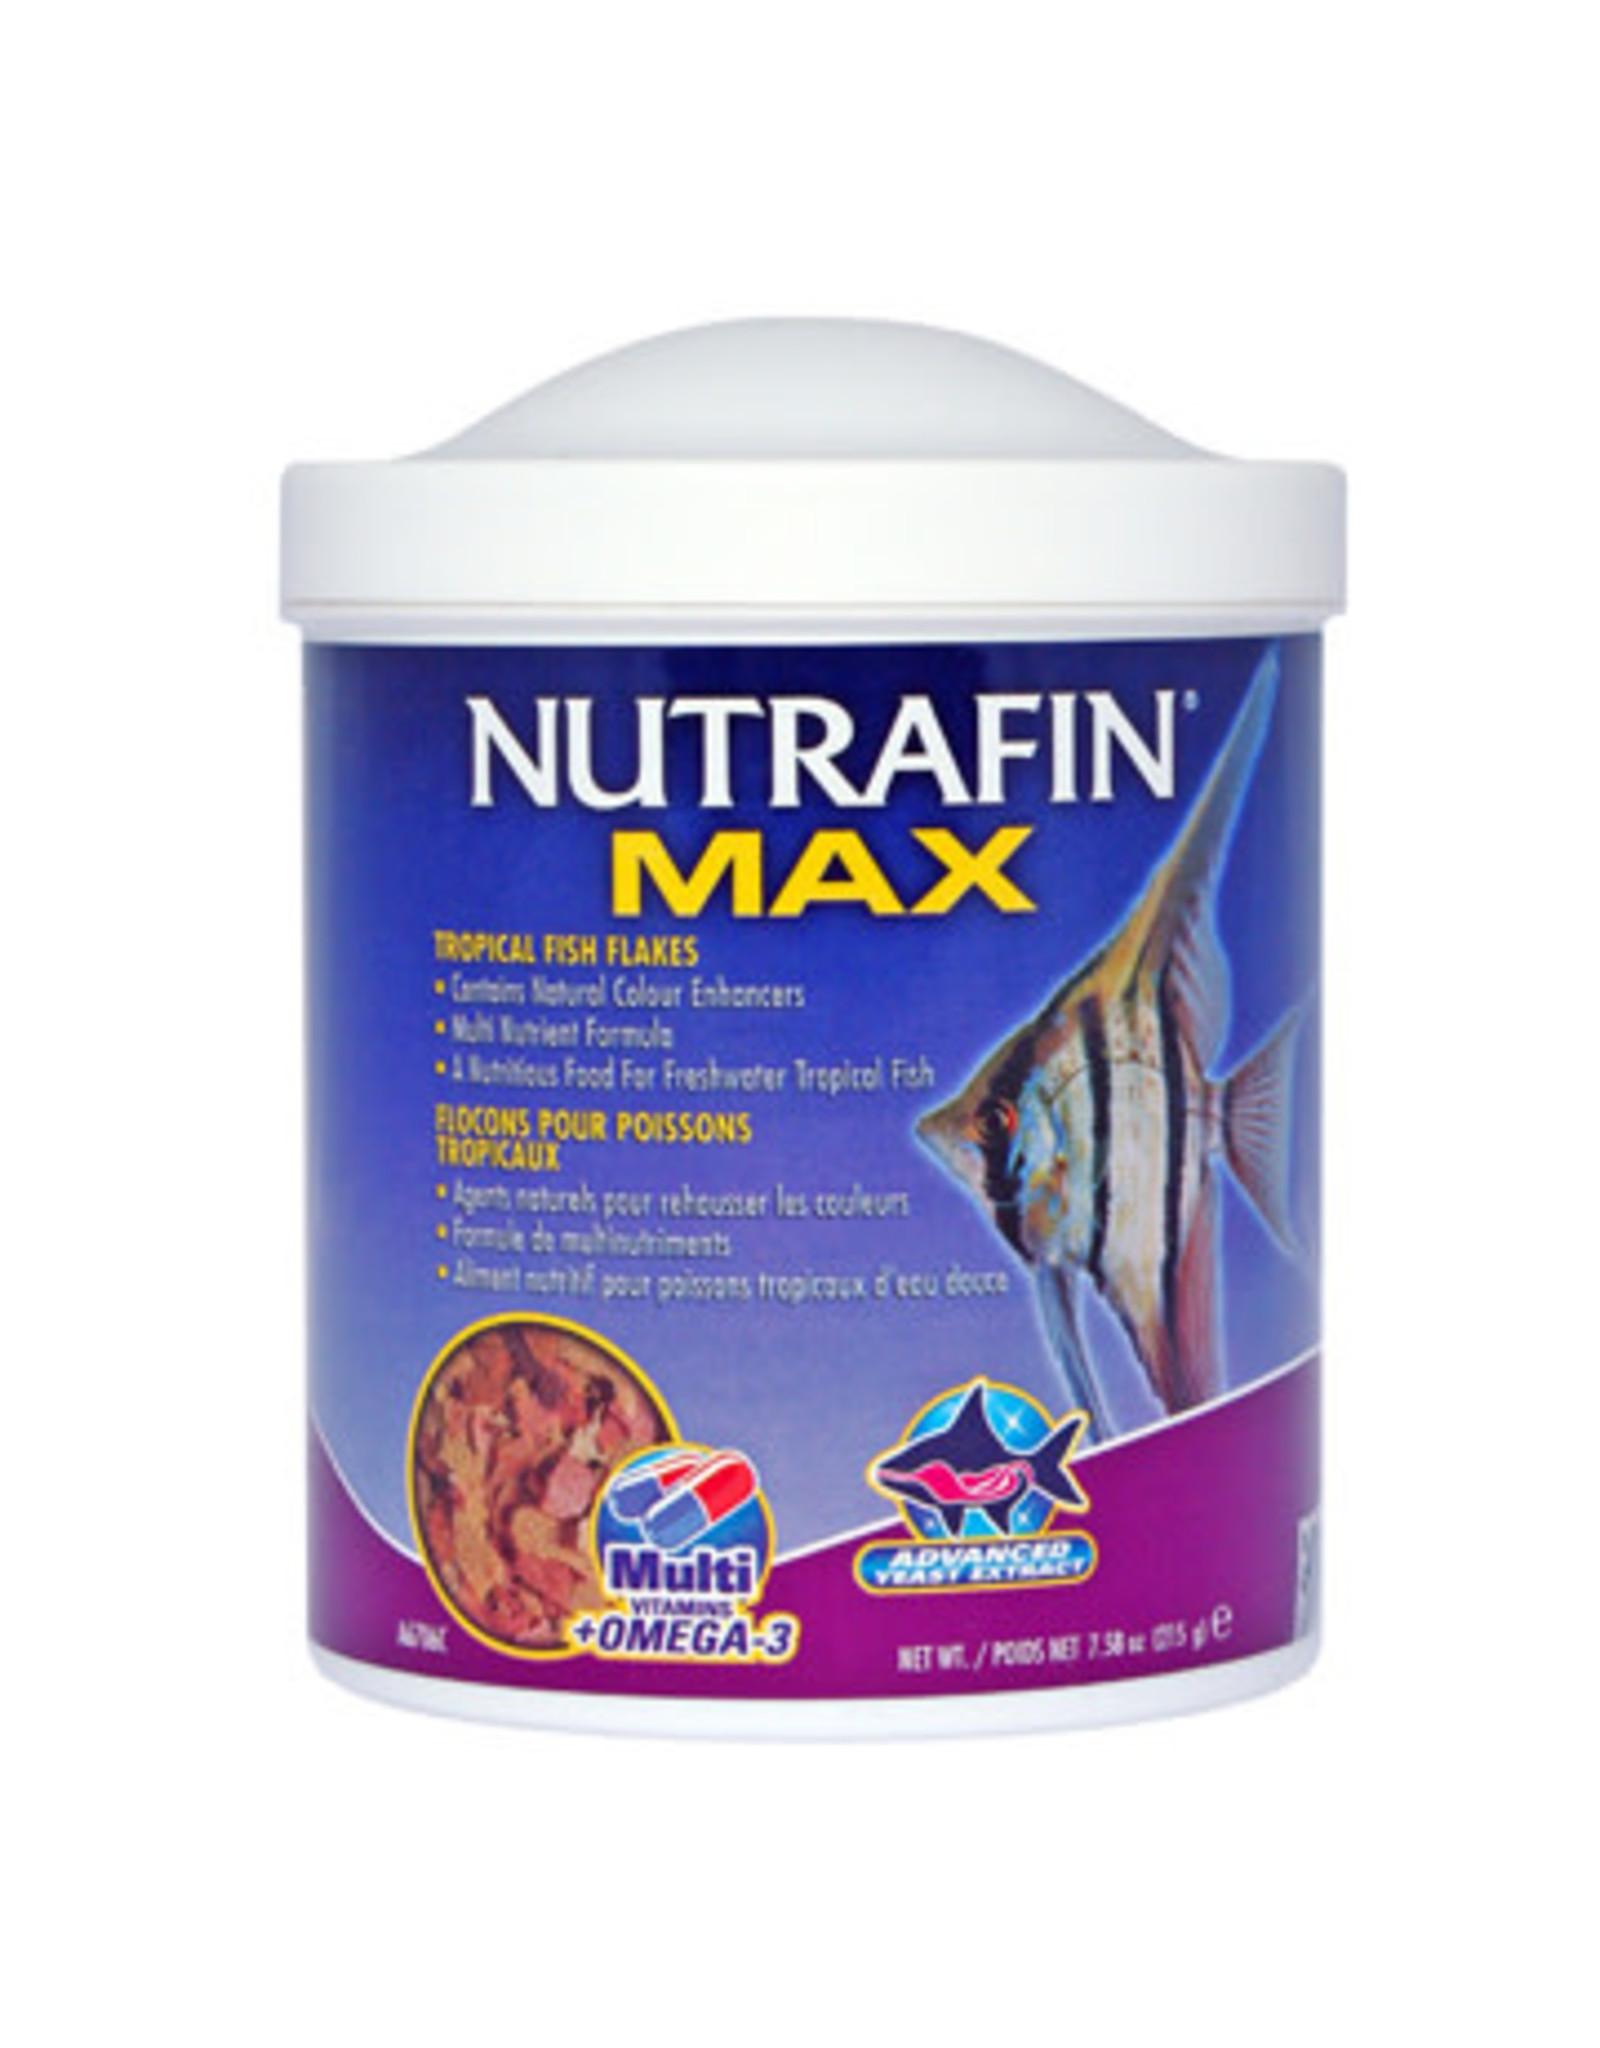 Nutrafin Nutrafin Max Tropical Fish Flakes, 215 g (7.58 oz)